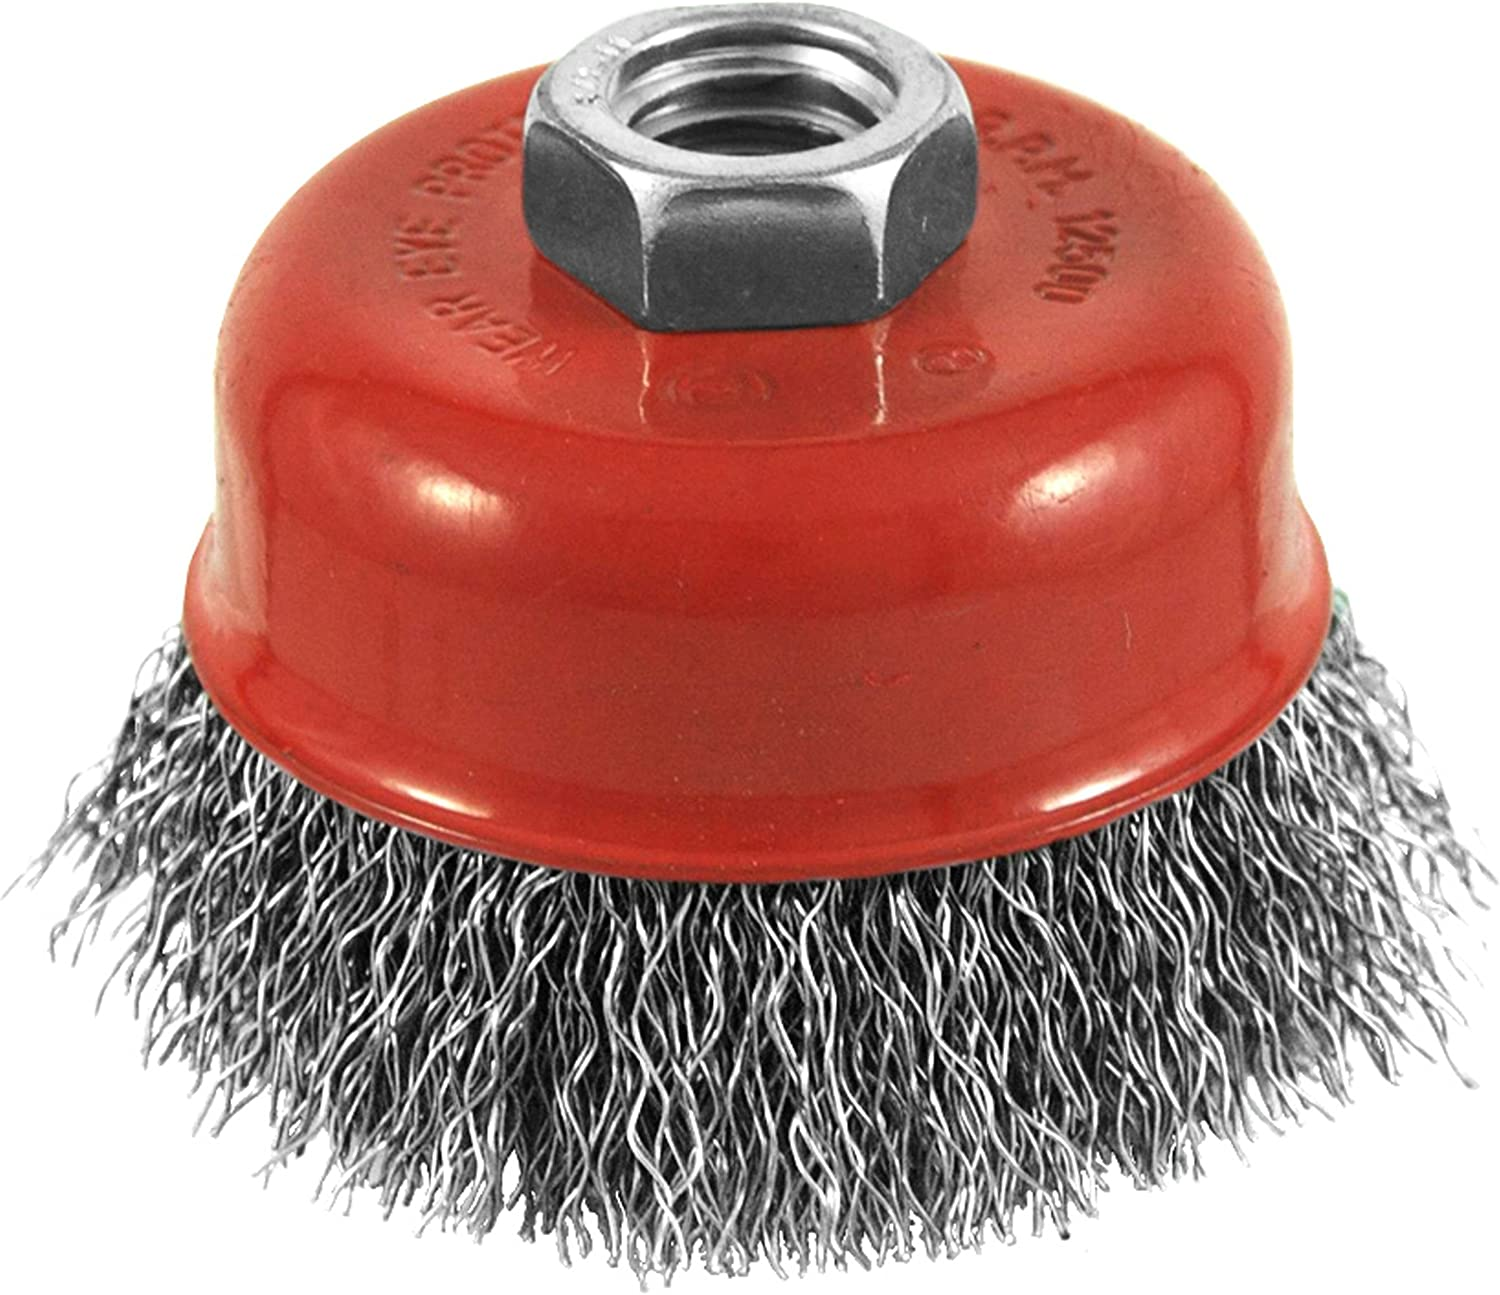 EAB Tool 2160438 3-Inch Diameter Crimped Wire Cup Brush Exchange A Blade